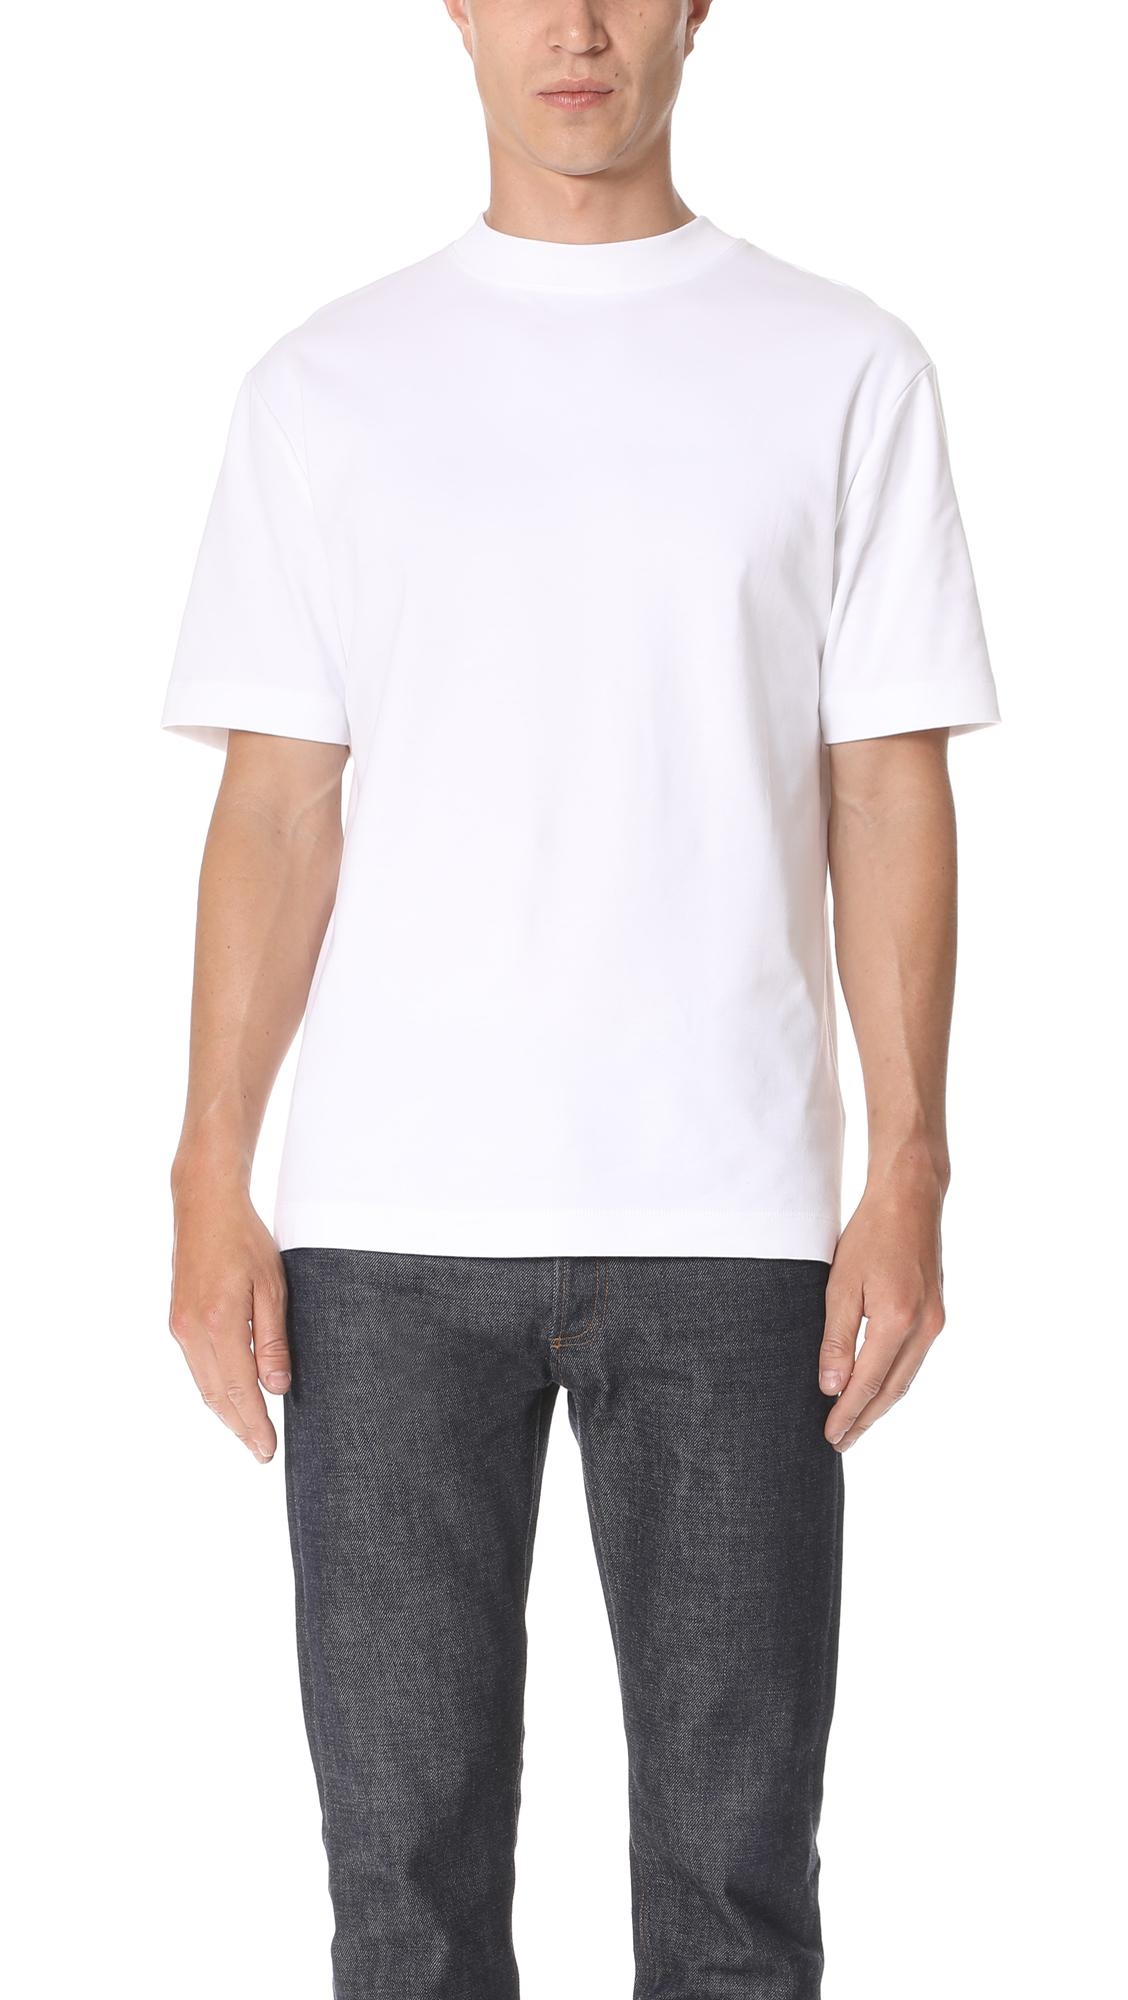 Sunspel Short Sleeve Mock Neck Tee In White